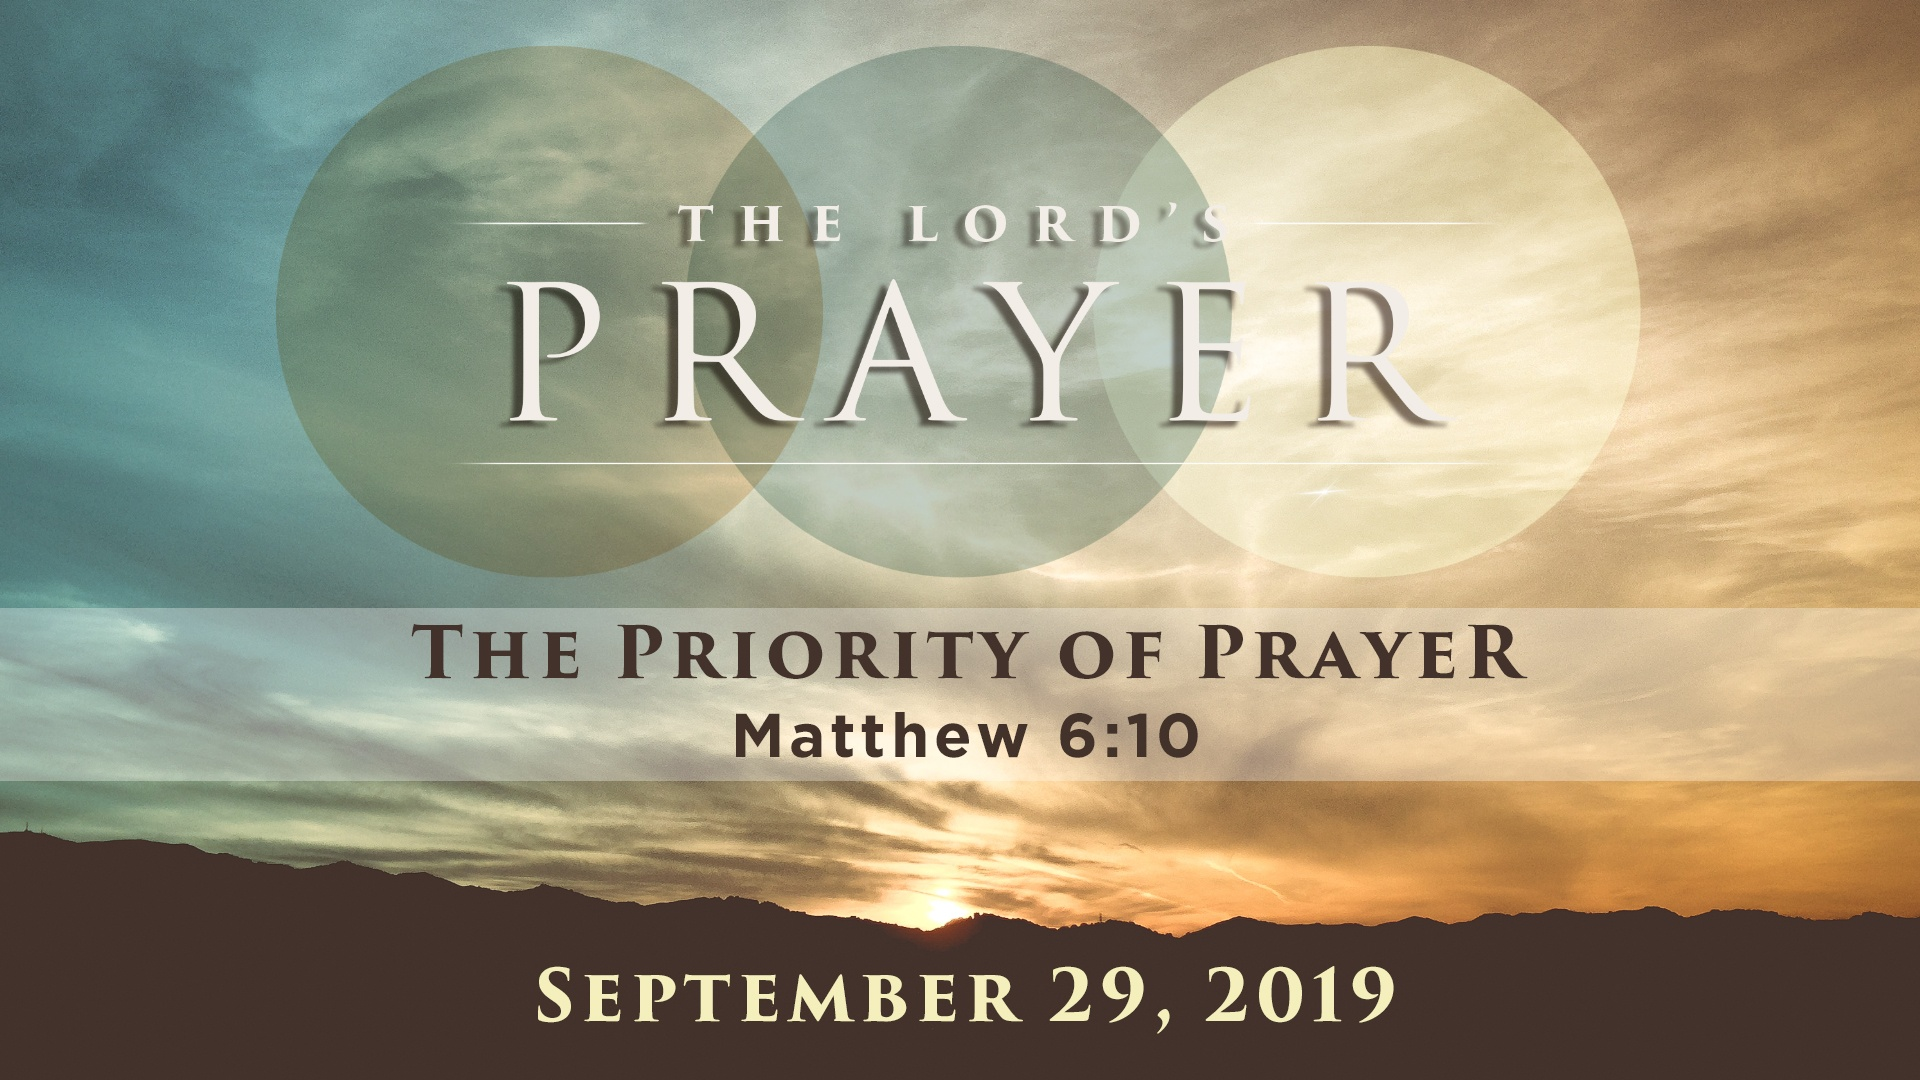 The Lord's Prayer: The Priority of Prayer